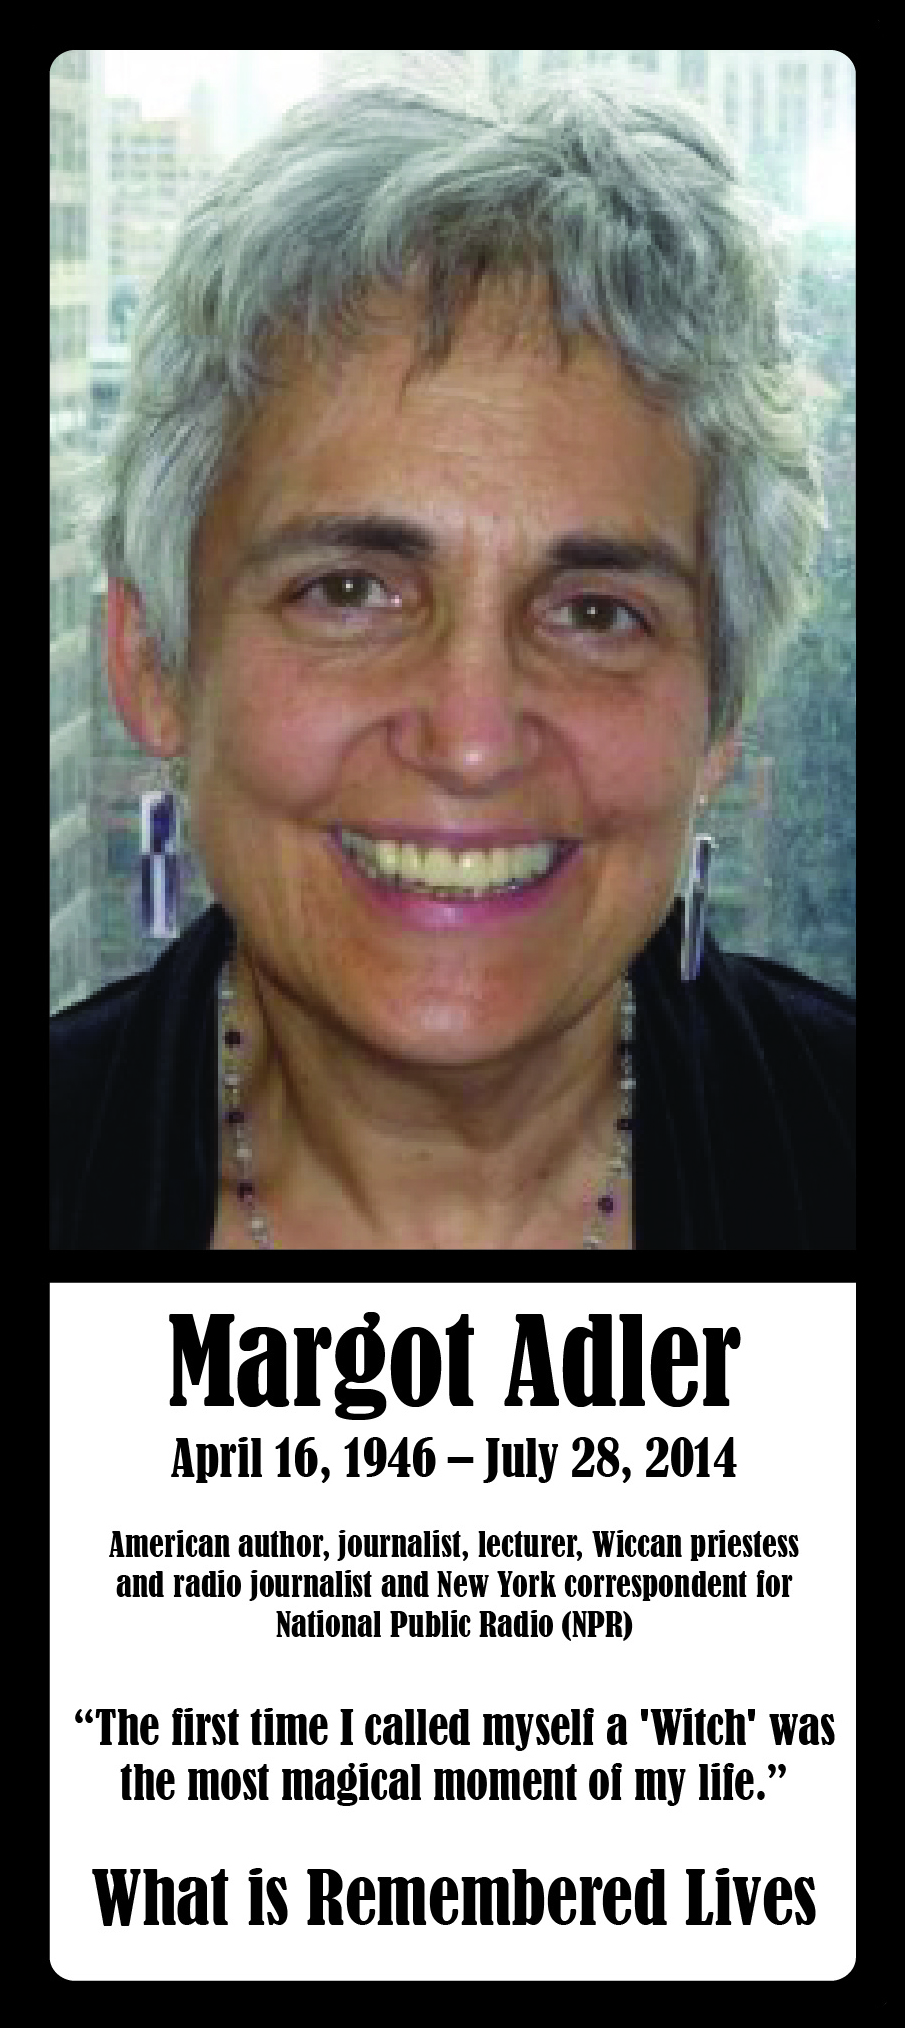 margot adler.jpg